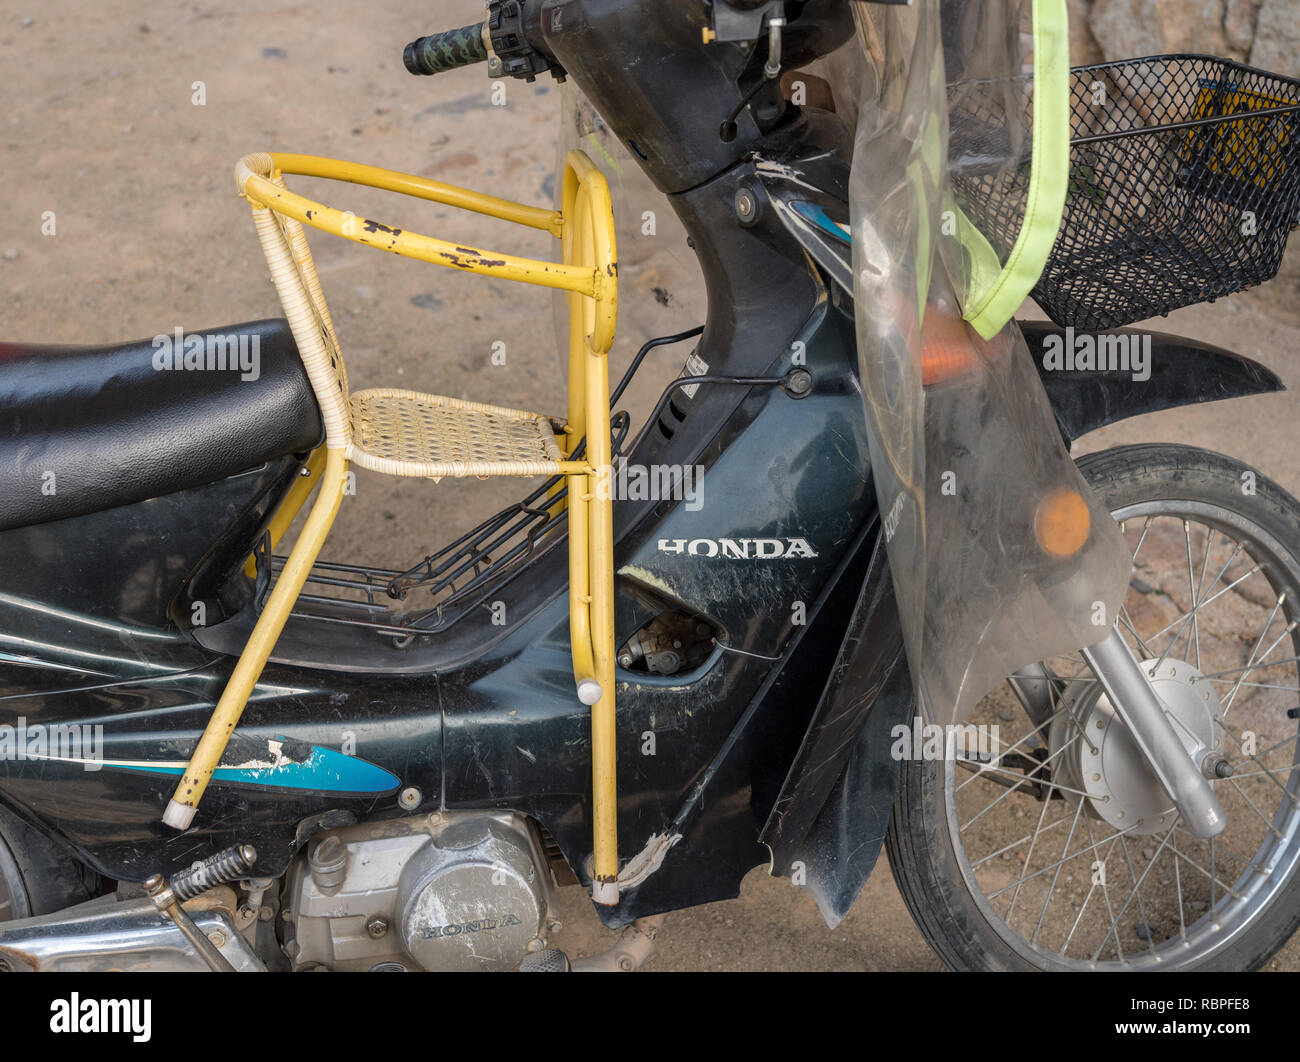 Metal childs chair wedged onto motor bike in China - Stock Image